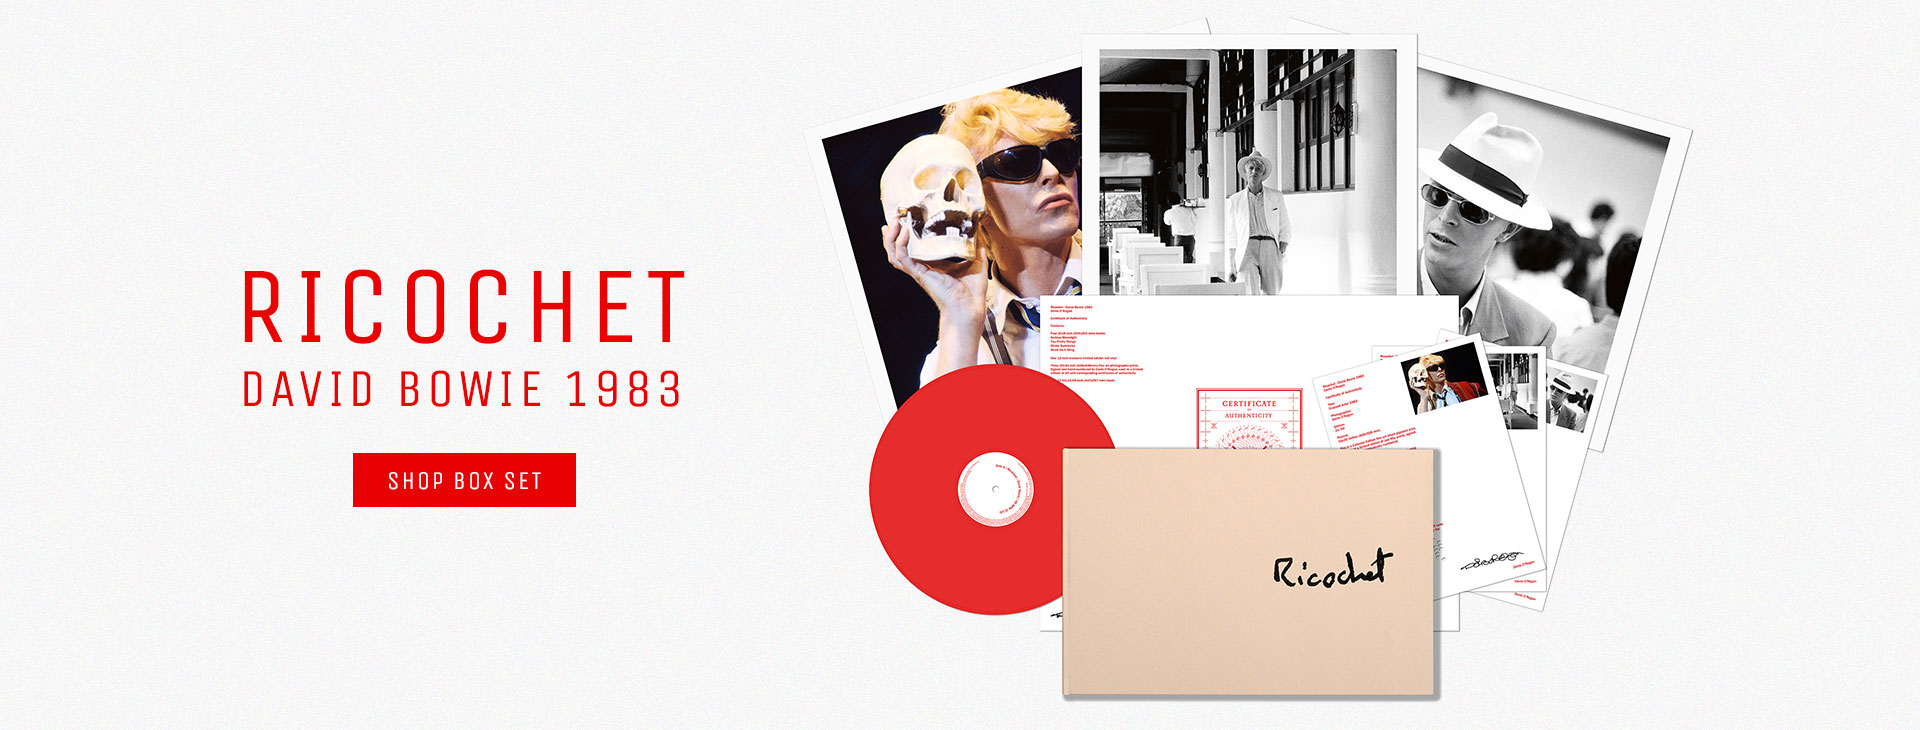 Ricochet: David Bowie 1983 Box Set